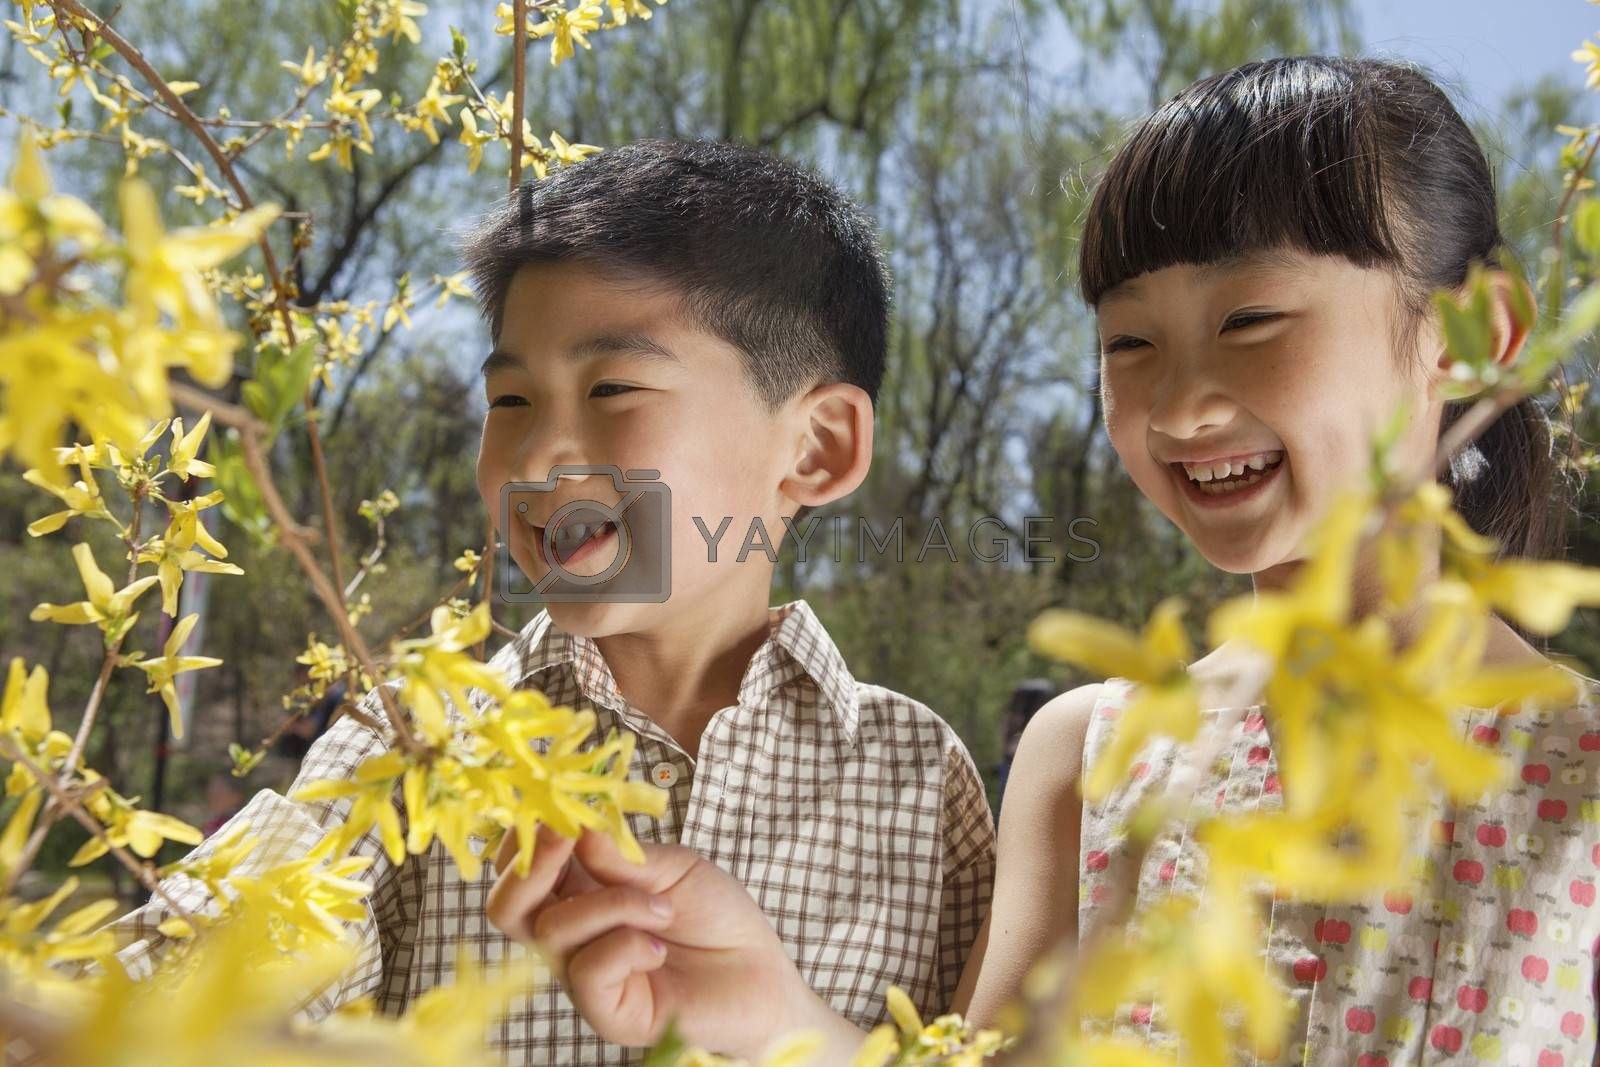 Smiling young boy and girl looking at the yellow blossoms on the tree in the park in springtime